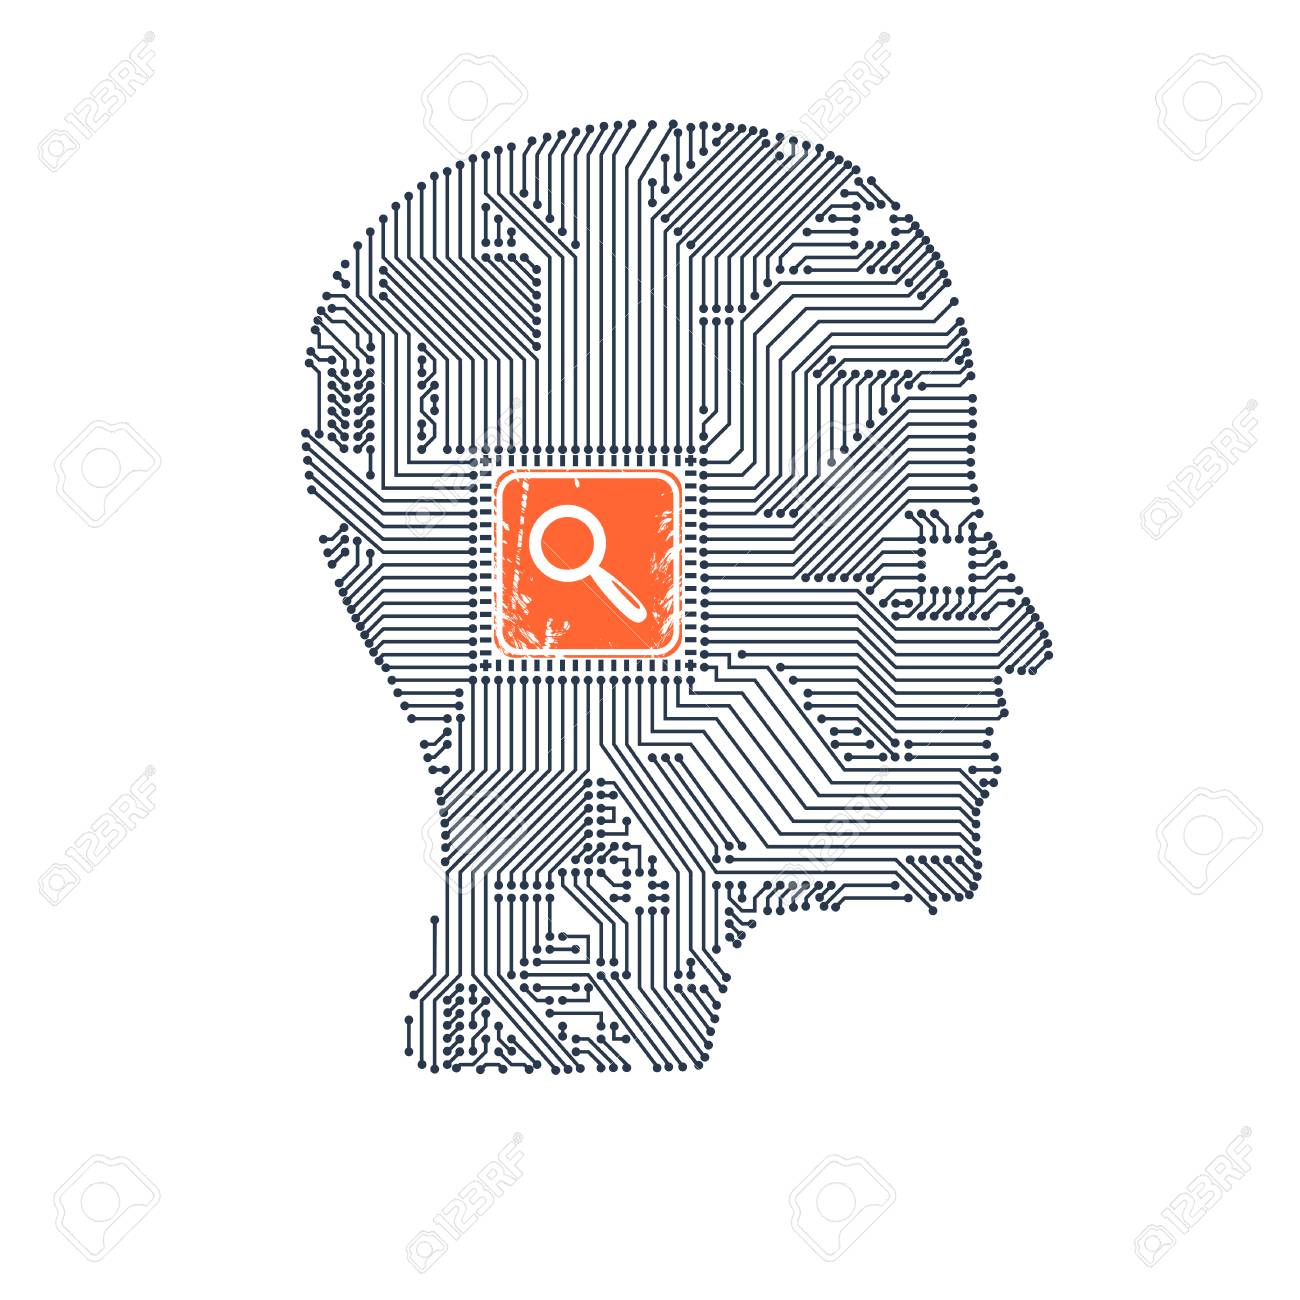 Circuit Board Head With Magnifier Inside As A Symbol Of Searching Diagram Symbols For Your Design Vector Illustration